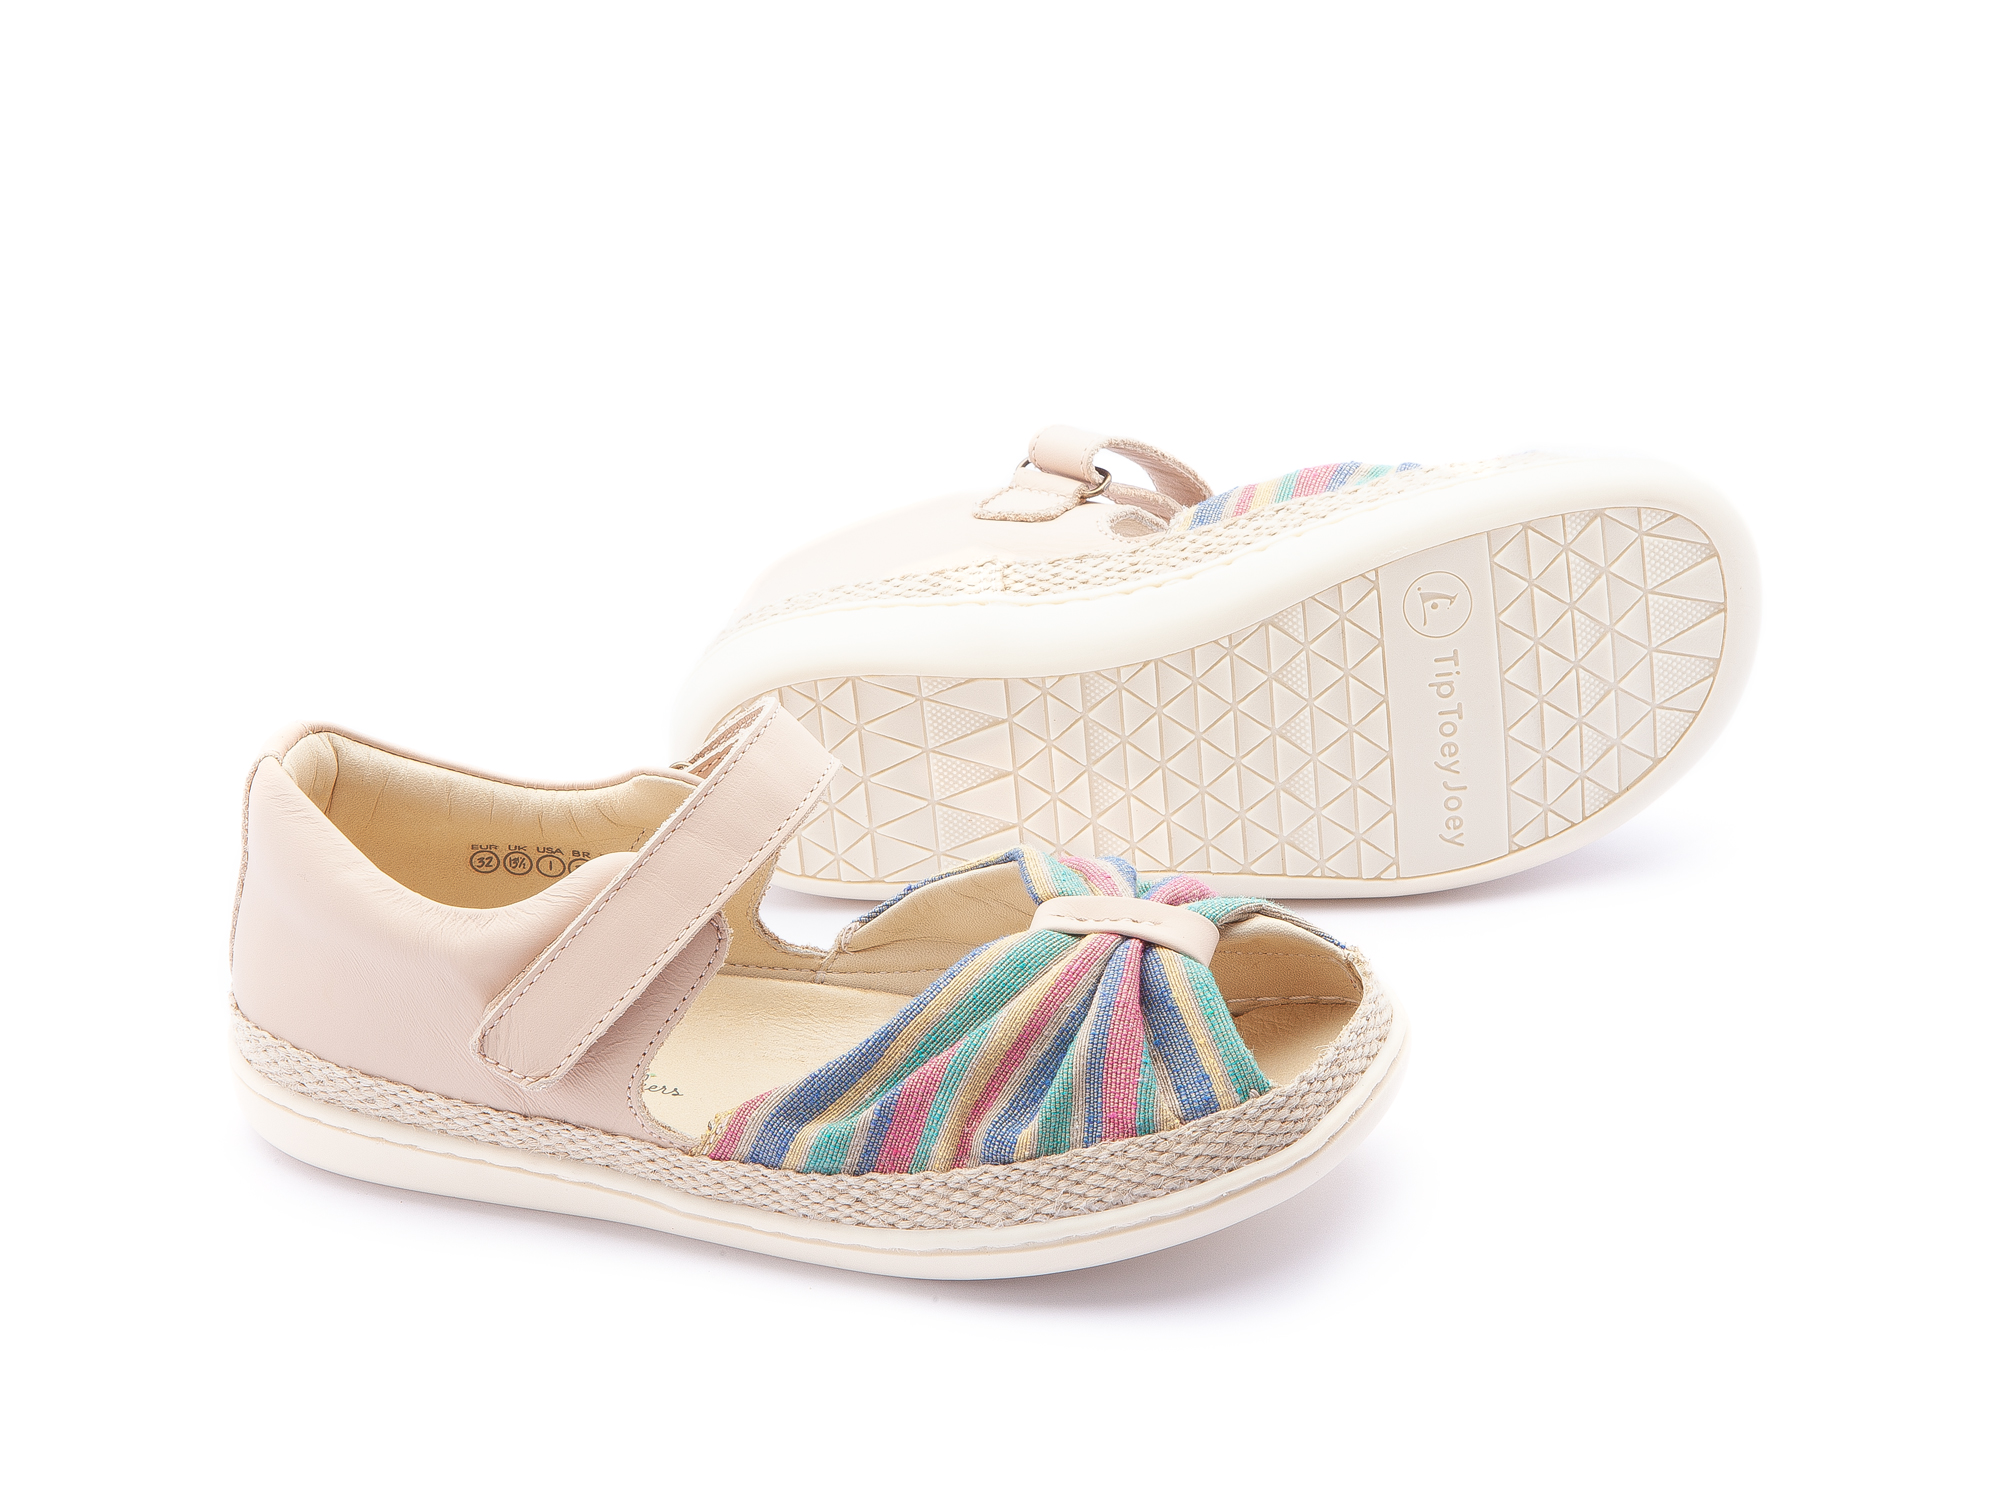 Sandália Coast Rainbow Canvas/ Yogurt Junior 4 à 8 anos - 2